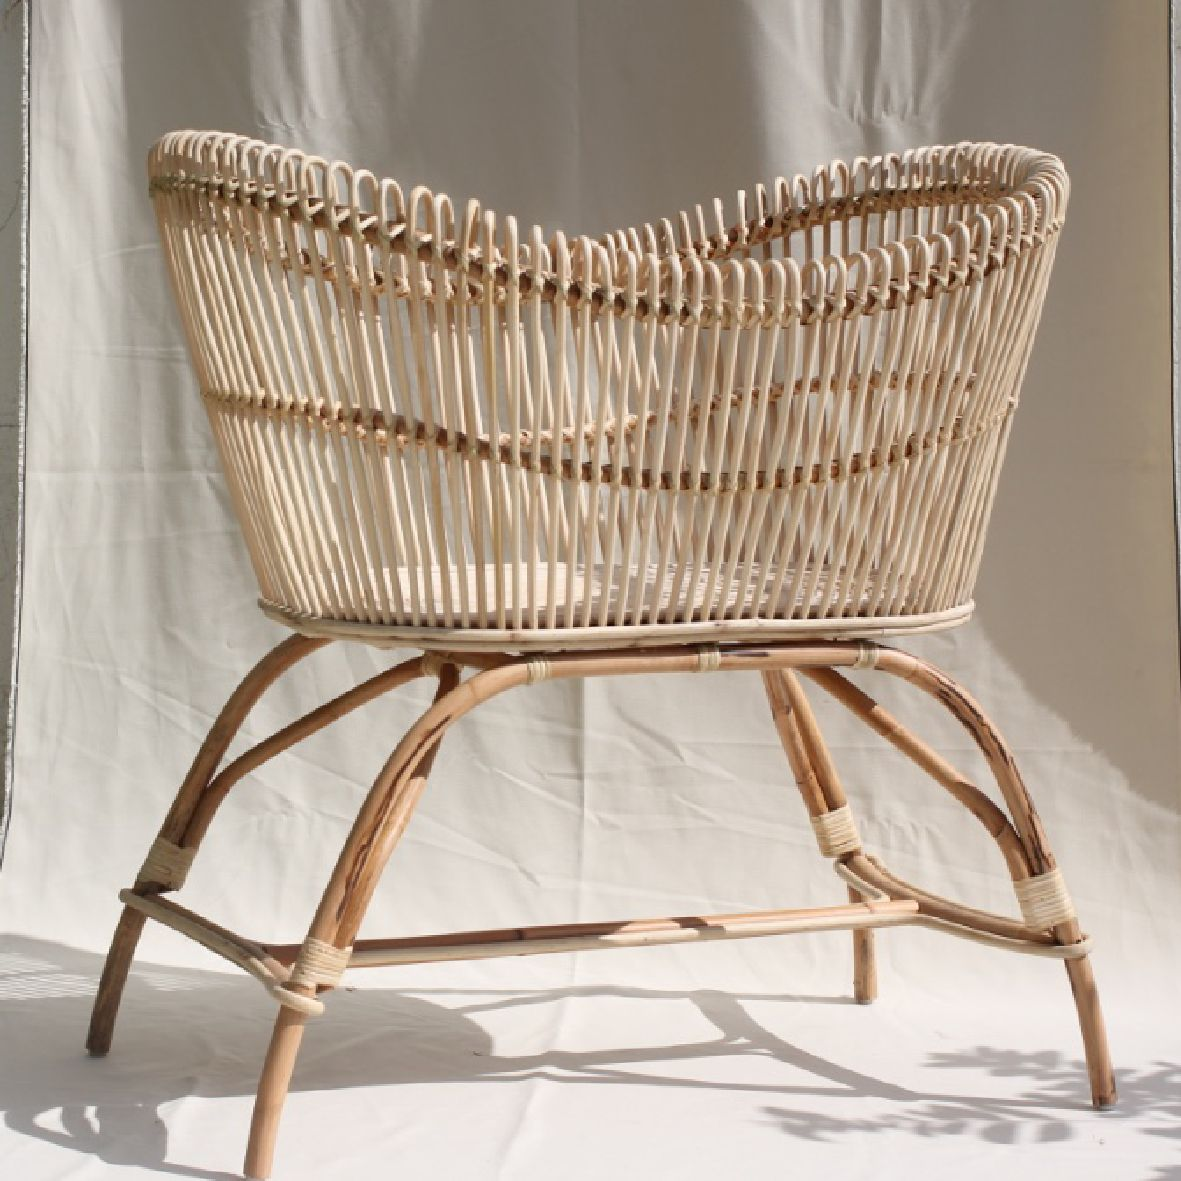 The Bassinet With Images Bassinet Baby Bassinet